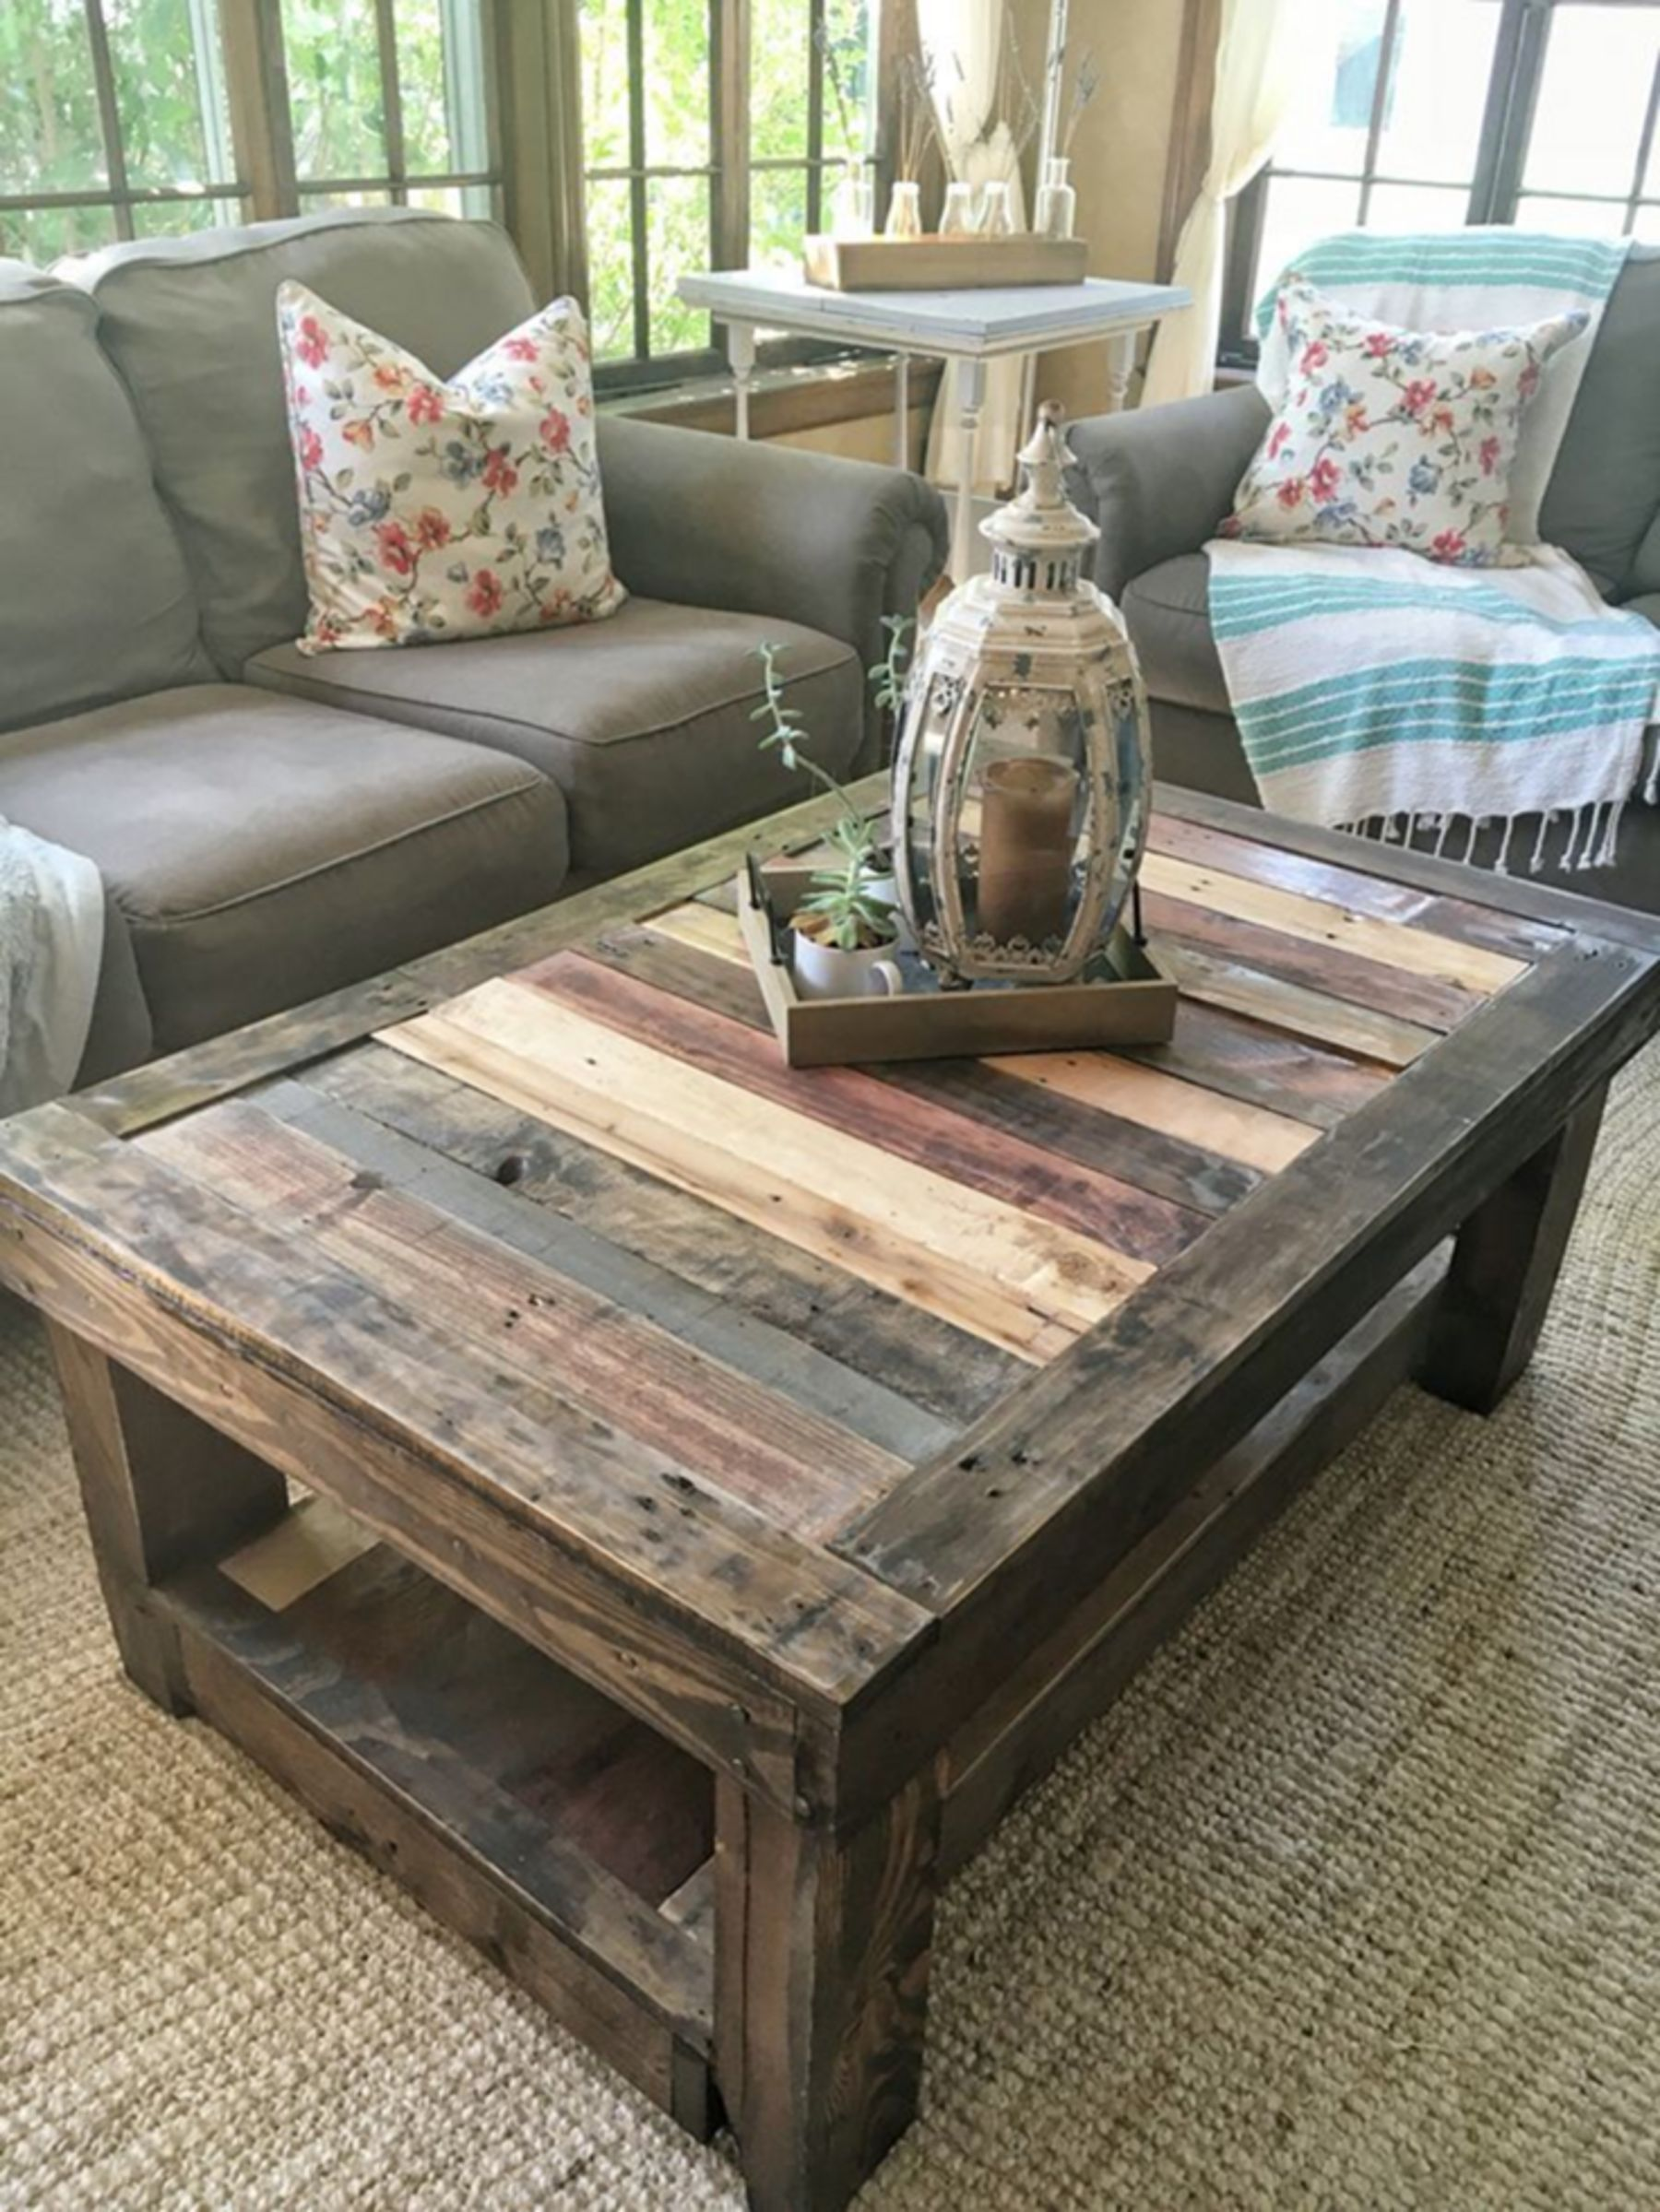 10 Cheap And Easy Diy Table Design Ideas You Must Try Diy Table Design Wood Pallet Furniture Coffee Table Furniture